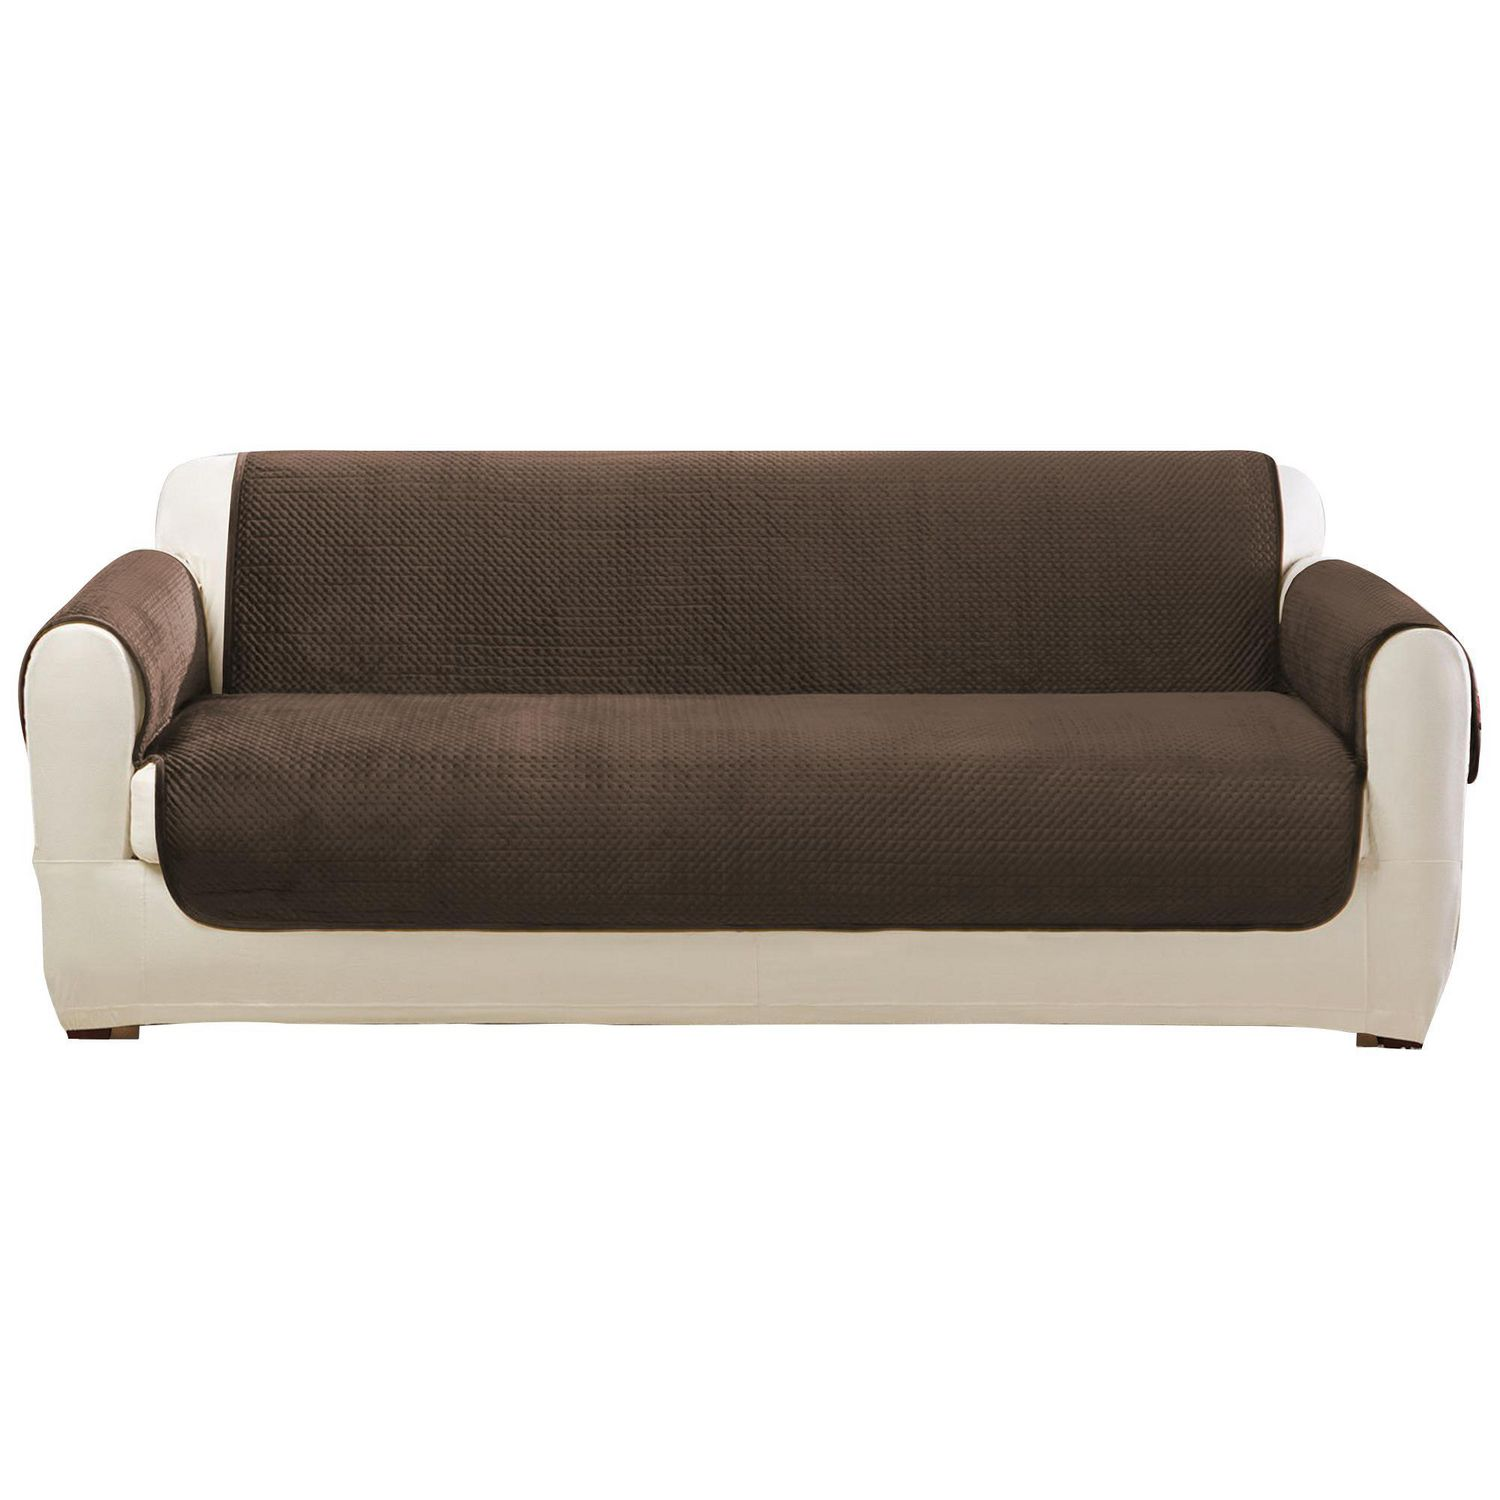 Sure fit elegant pick stitch sofa furniture cover walmart canada